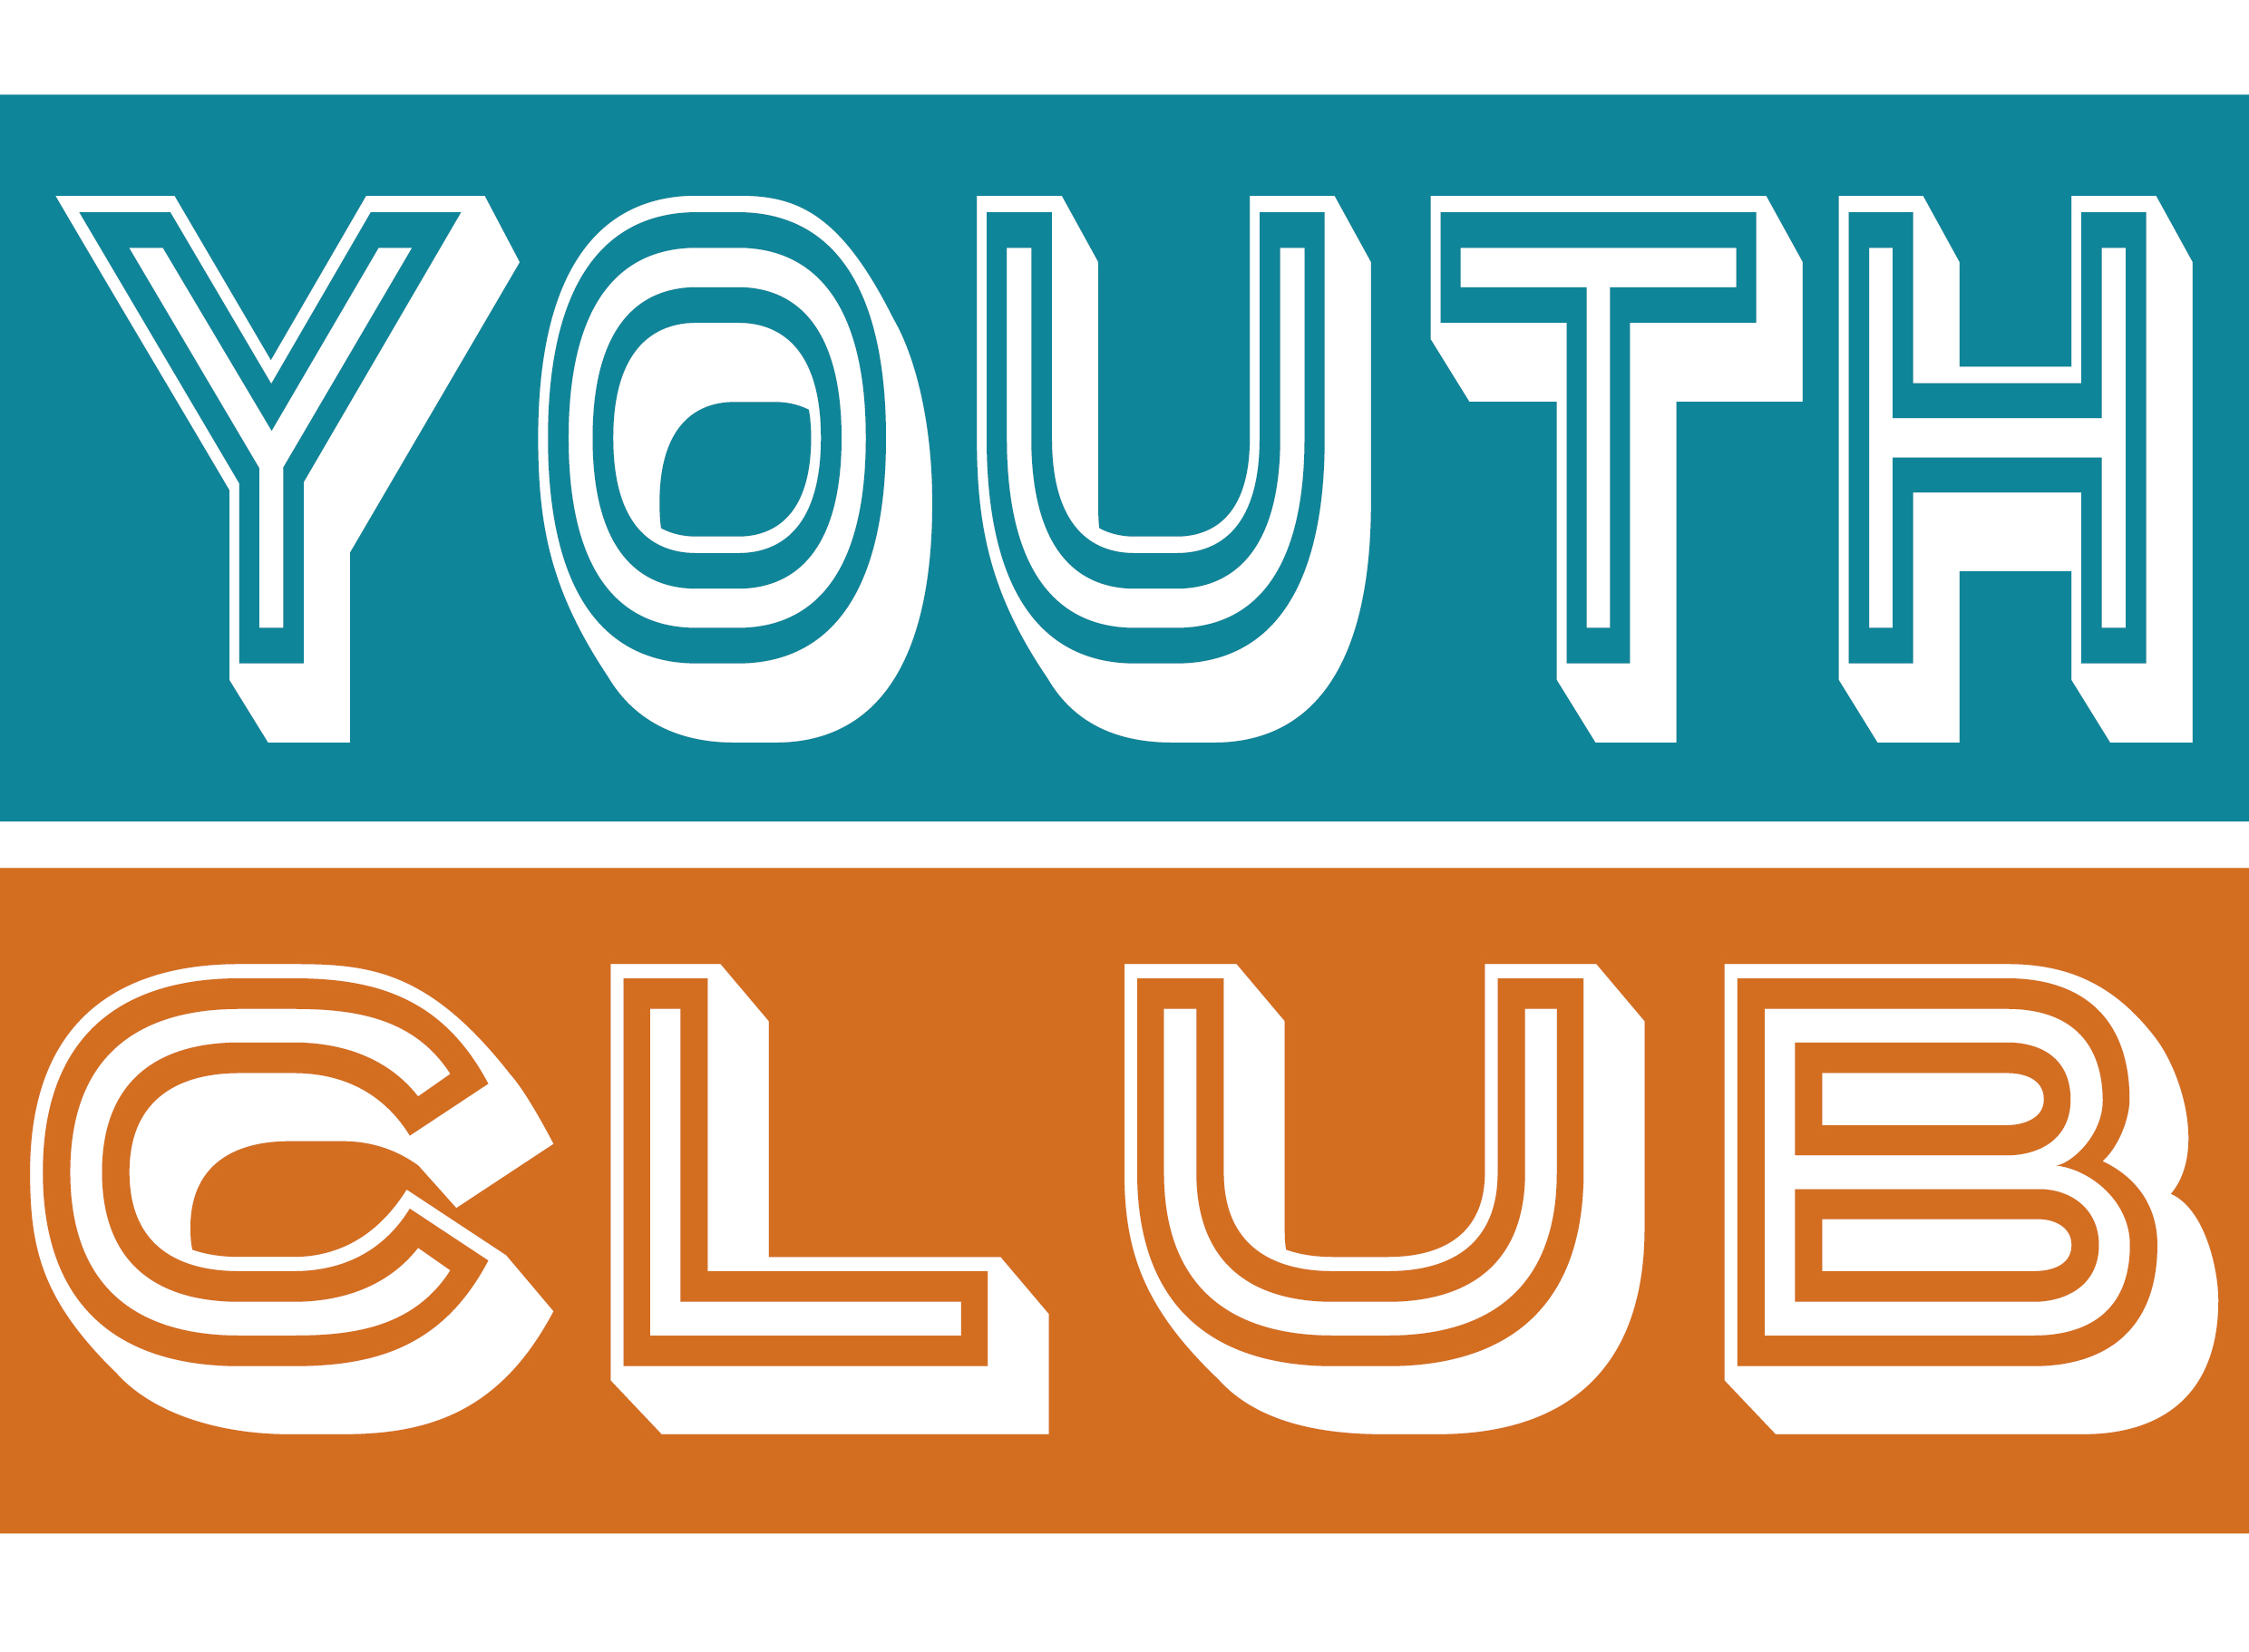 Youth Club for P4-P7 Kids